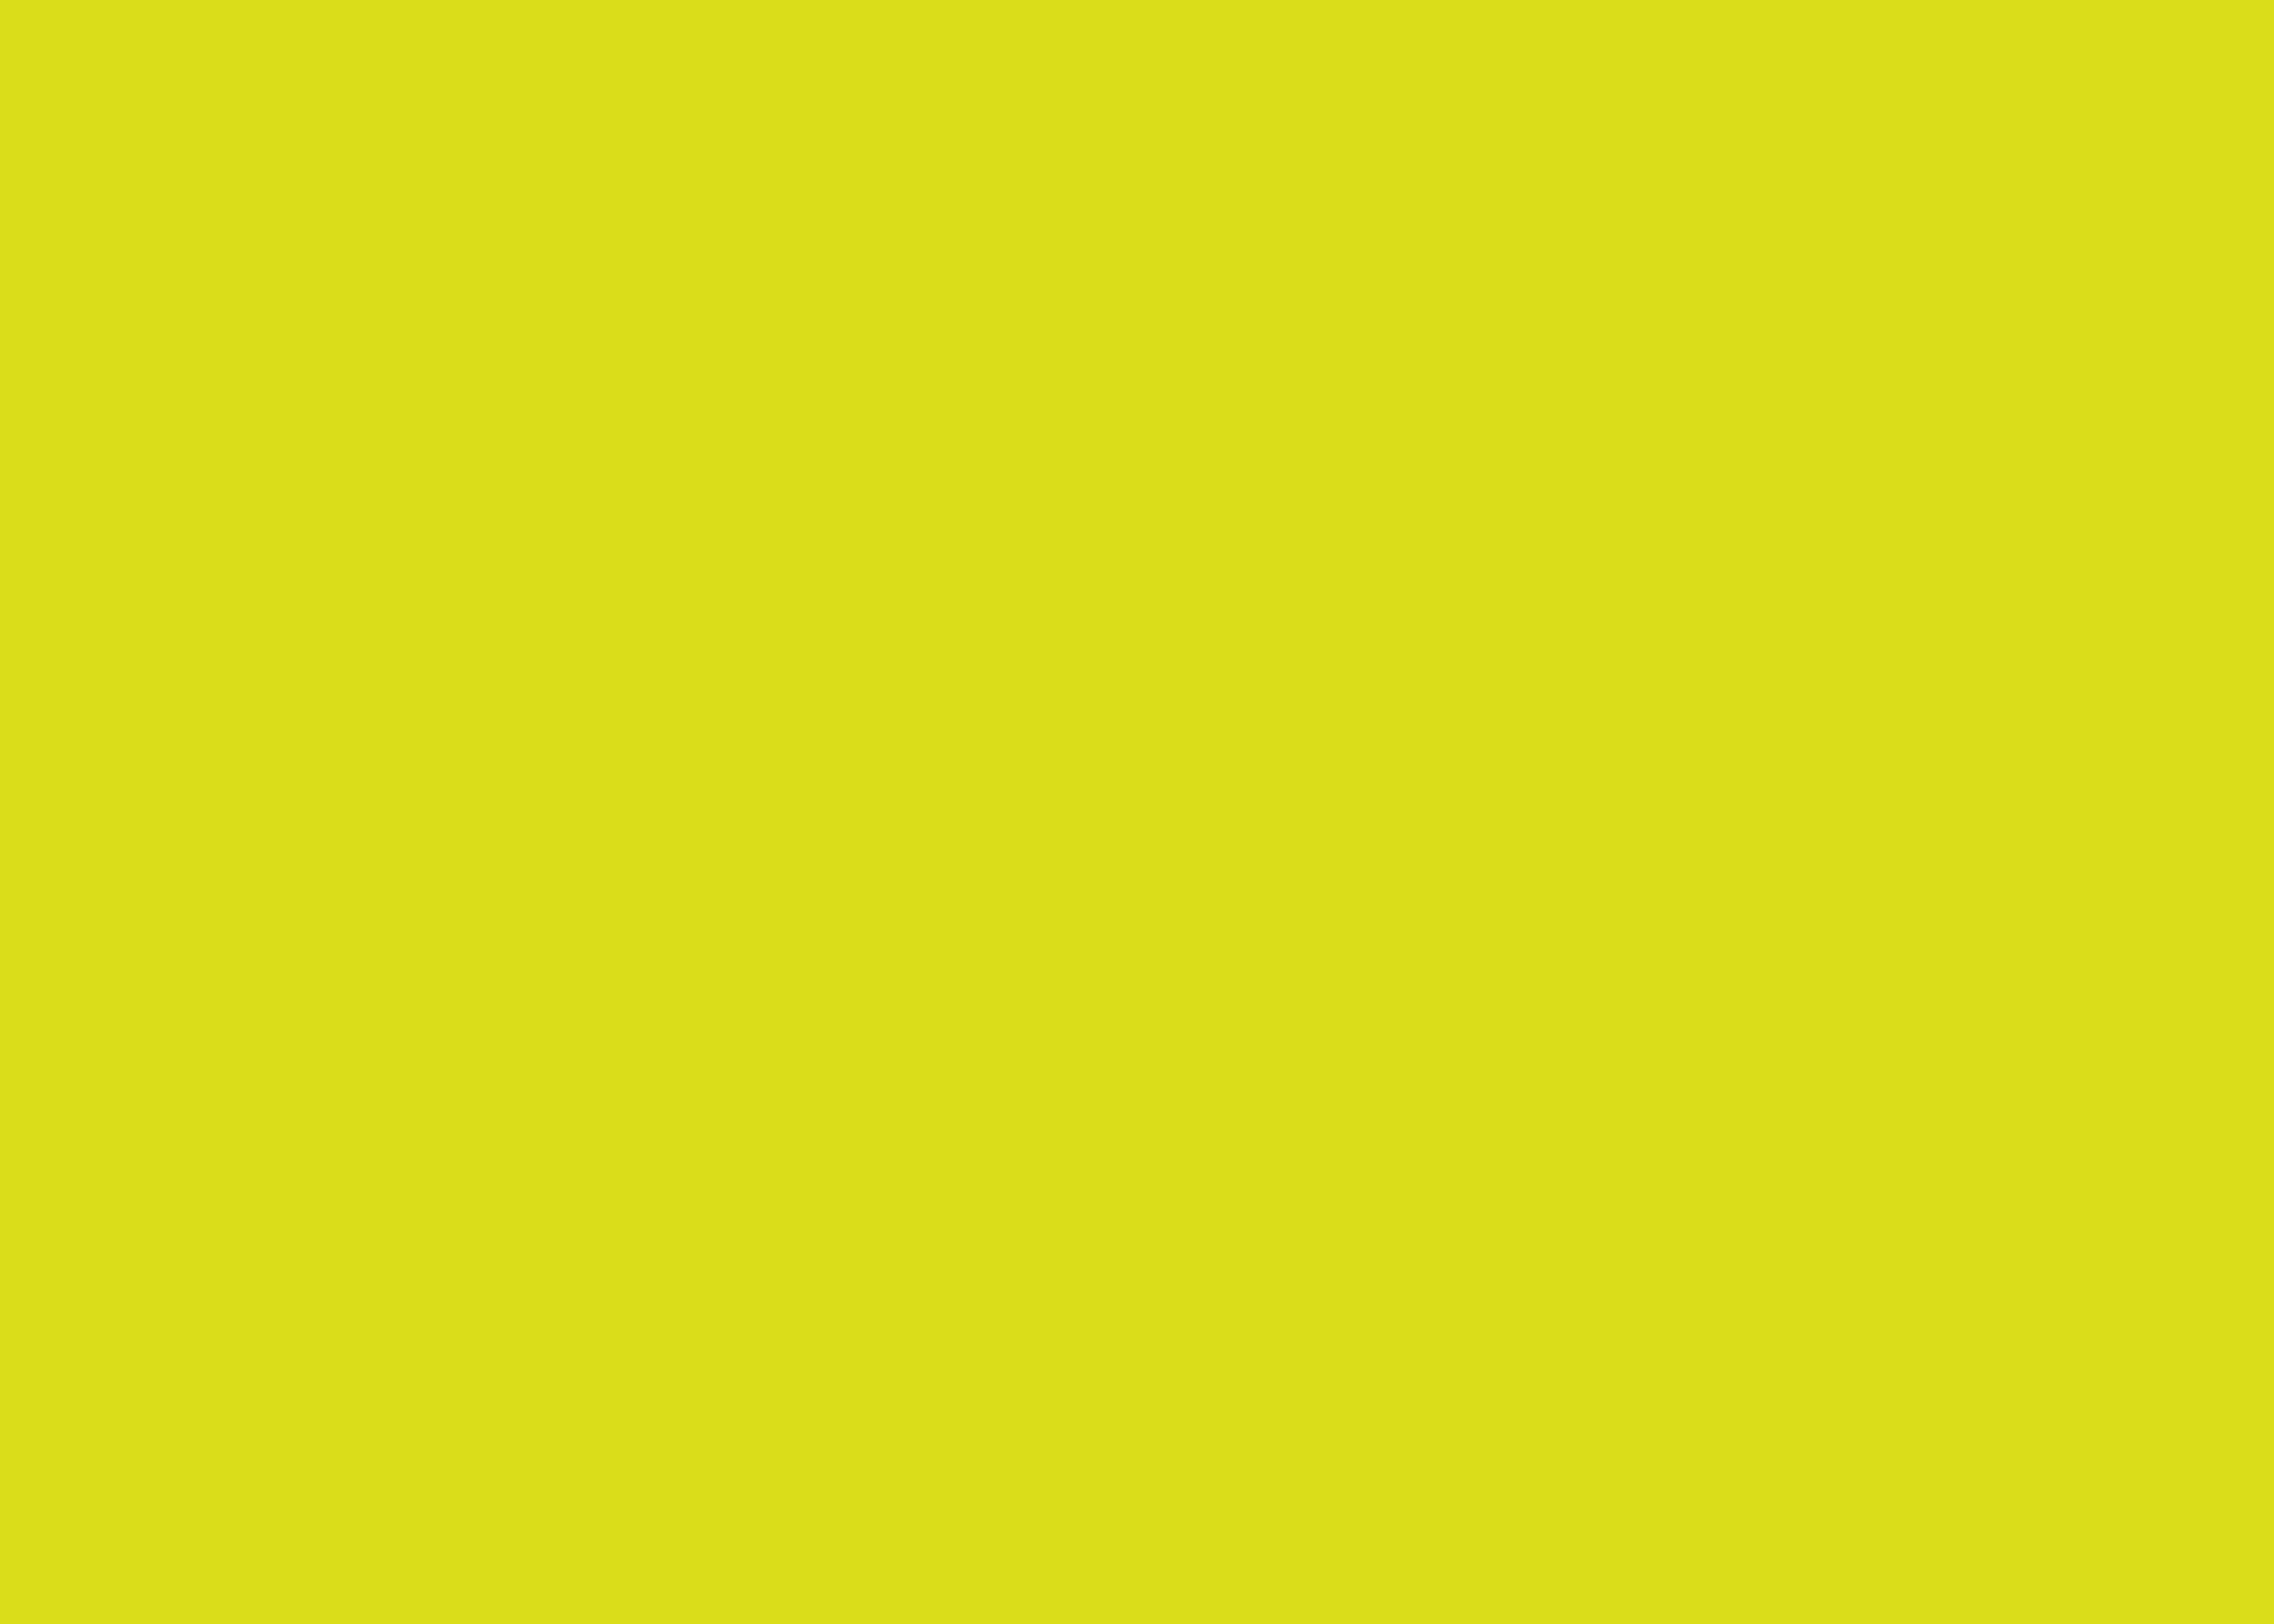 Web colors lime - Chartreuse Traditional Chartreuse Yellow Color Coordinates Hex Triplet Dfff00 Srgbb